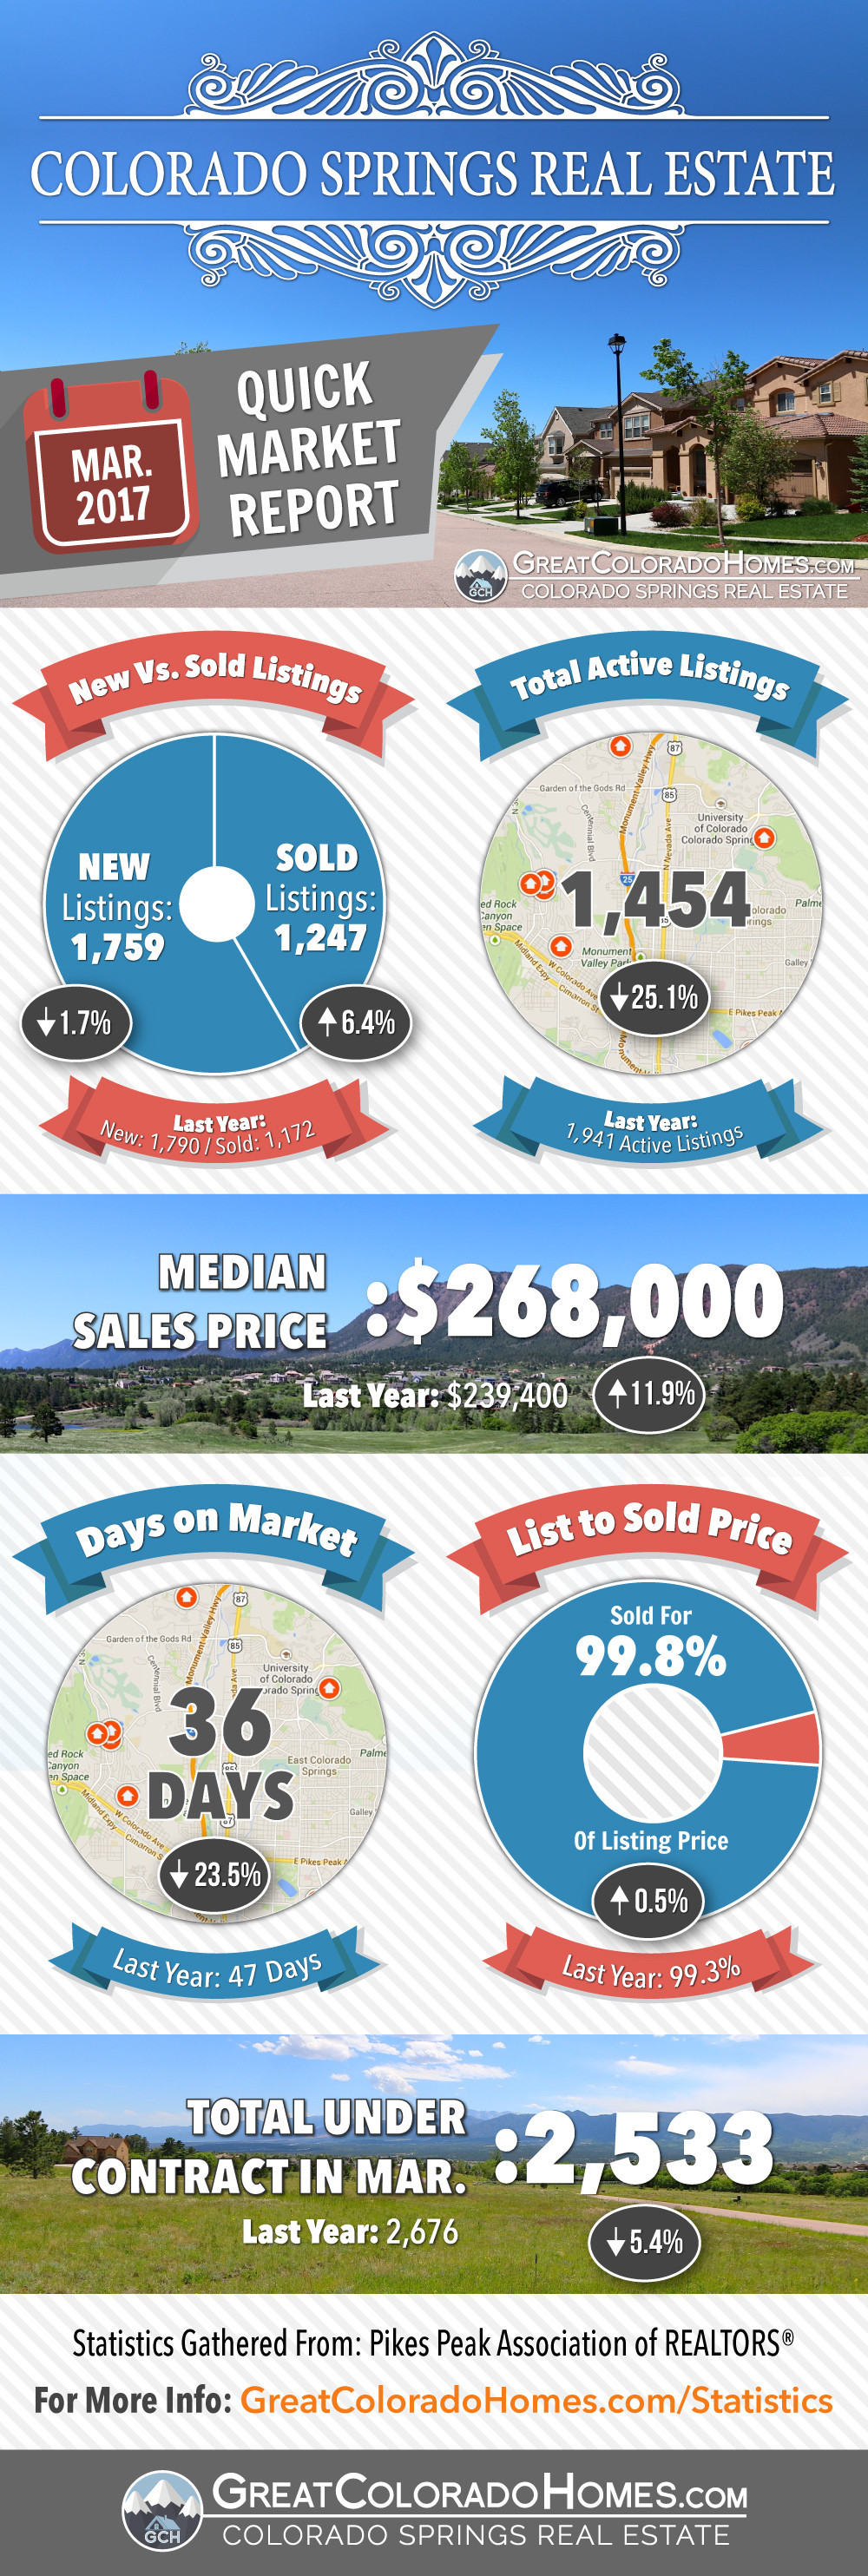 March 2017 Colorado Springs Real Estate Market Report